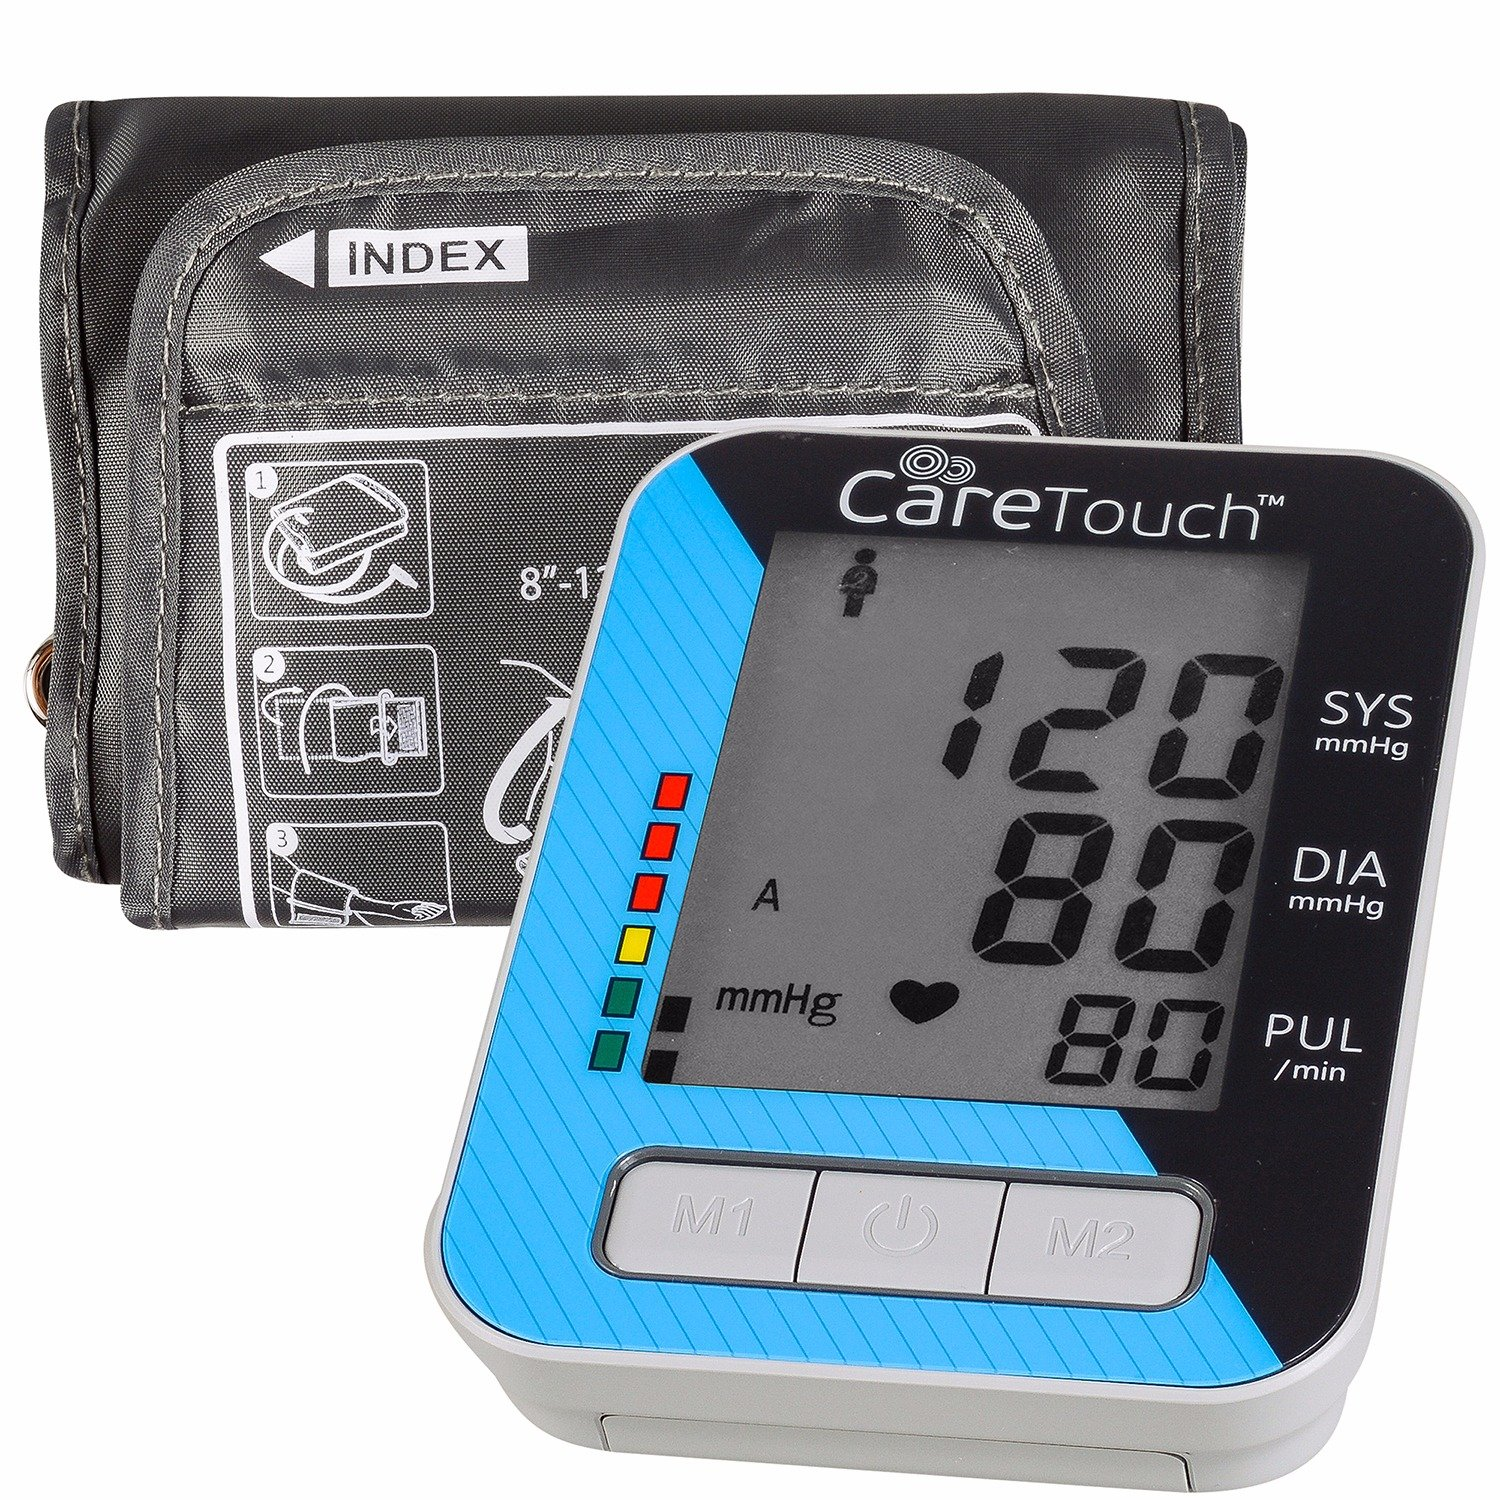 Care Touch Fully Automatic Upper Arm Blood Pressure Monitor - Classic Edition, Medium Cuff - Batteries and Case Included